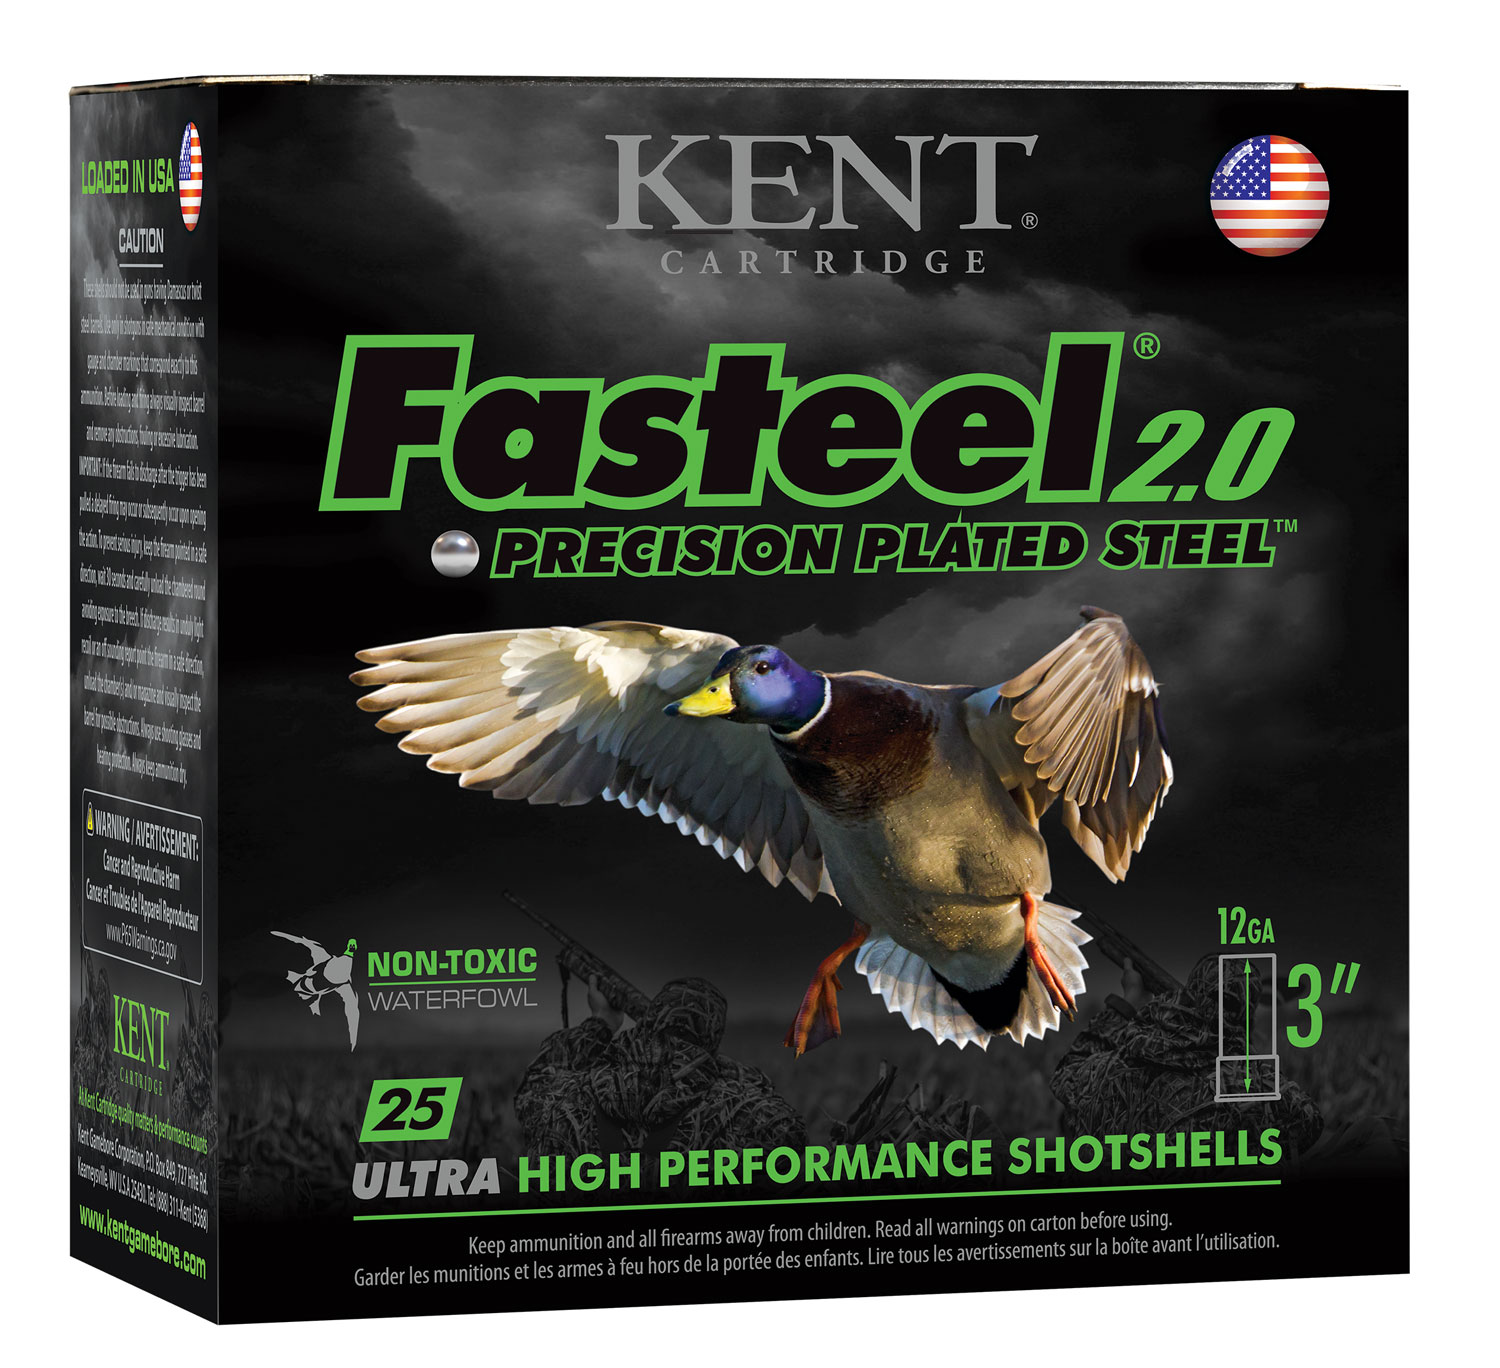 Kent Cartridge K123FS364 Fasteel 2.0  12 Gauge 3